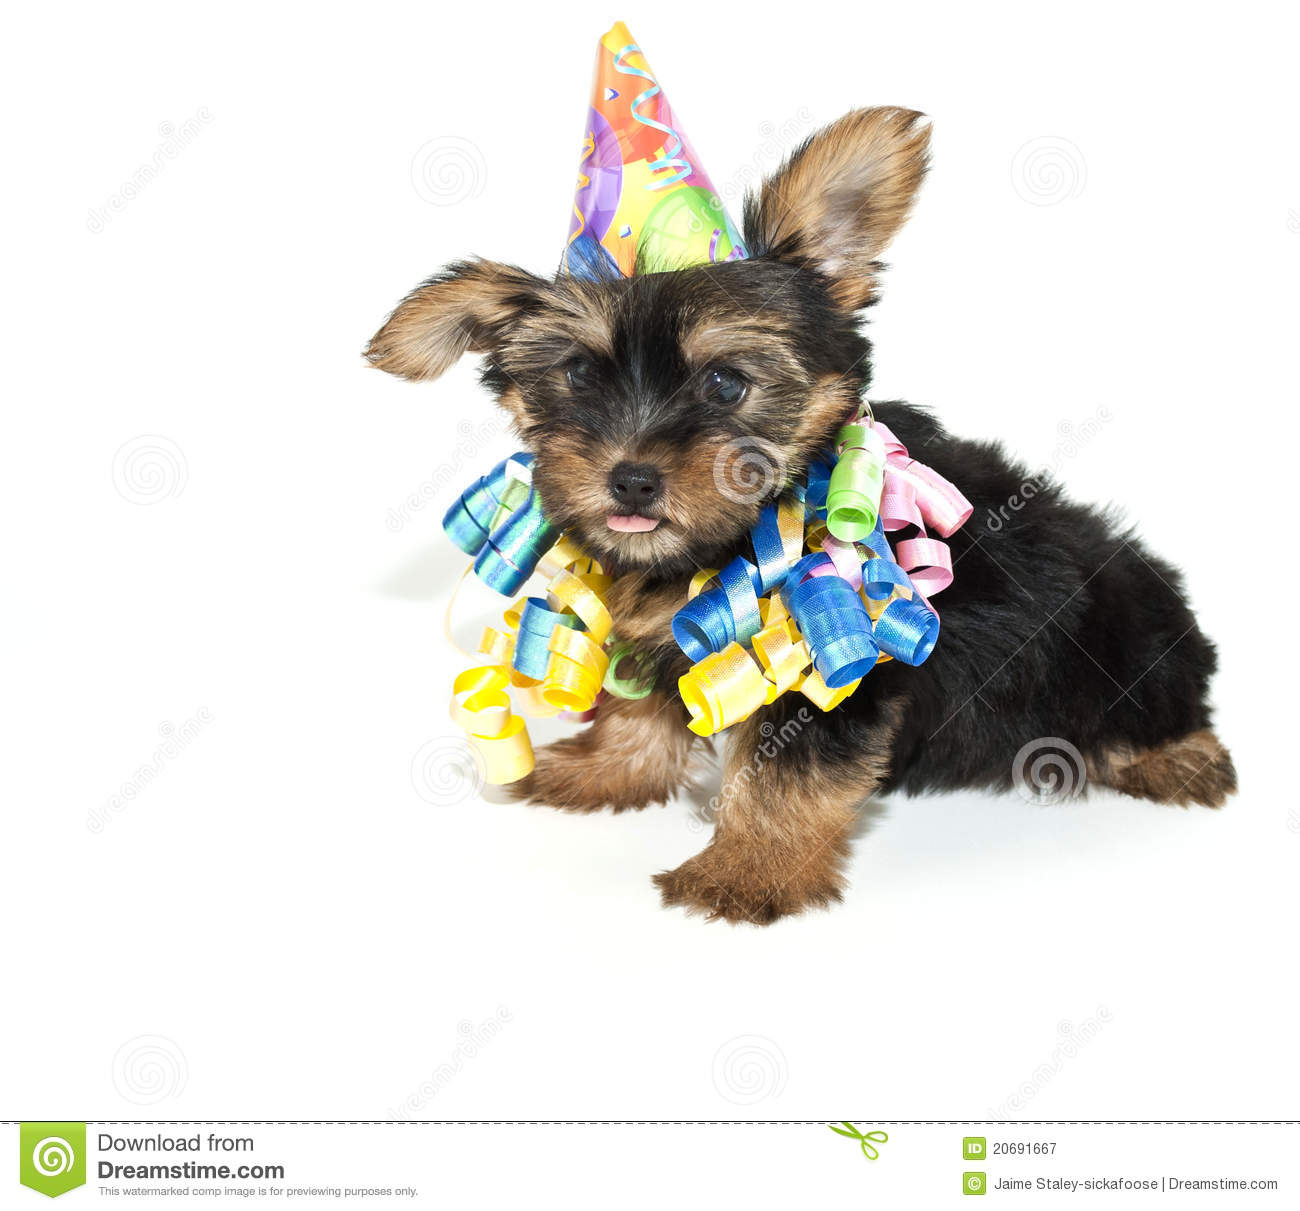 106 Birthday Yorkie Puppy Photos Free Royalty Free Stock Photos From Dreamstime